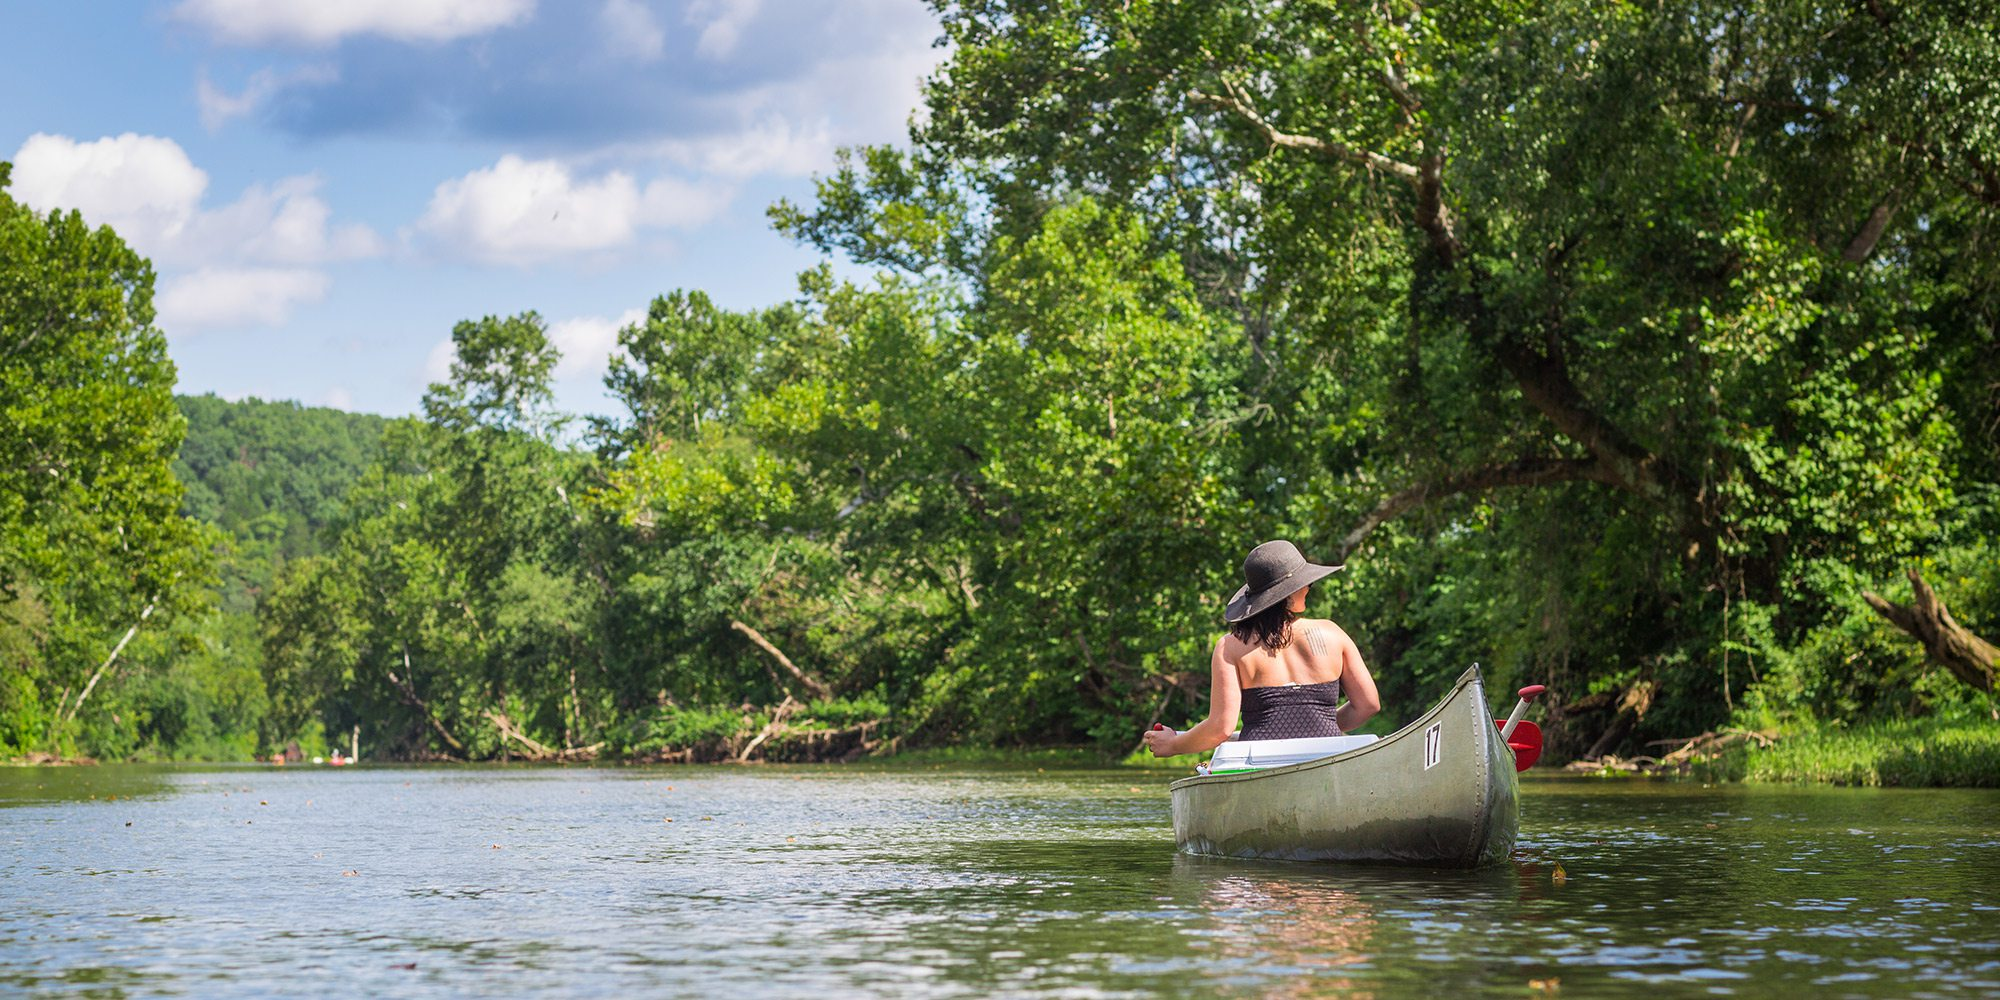 Canoe or float down Big Piney River in Missouri